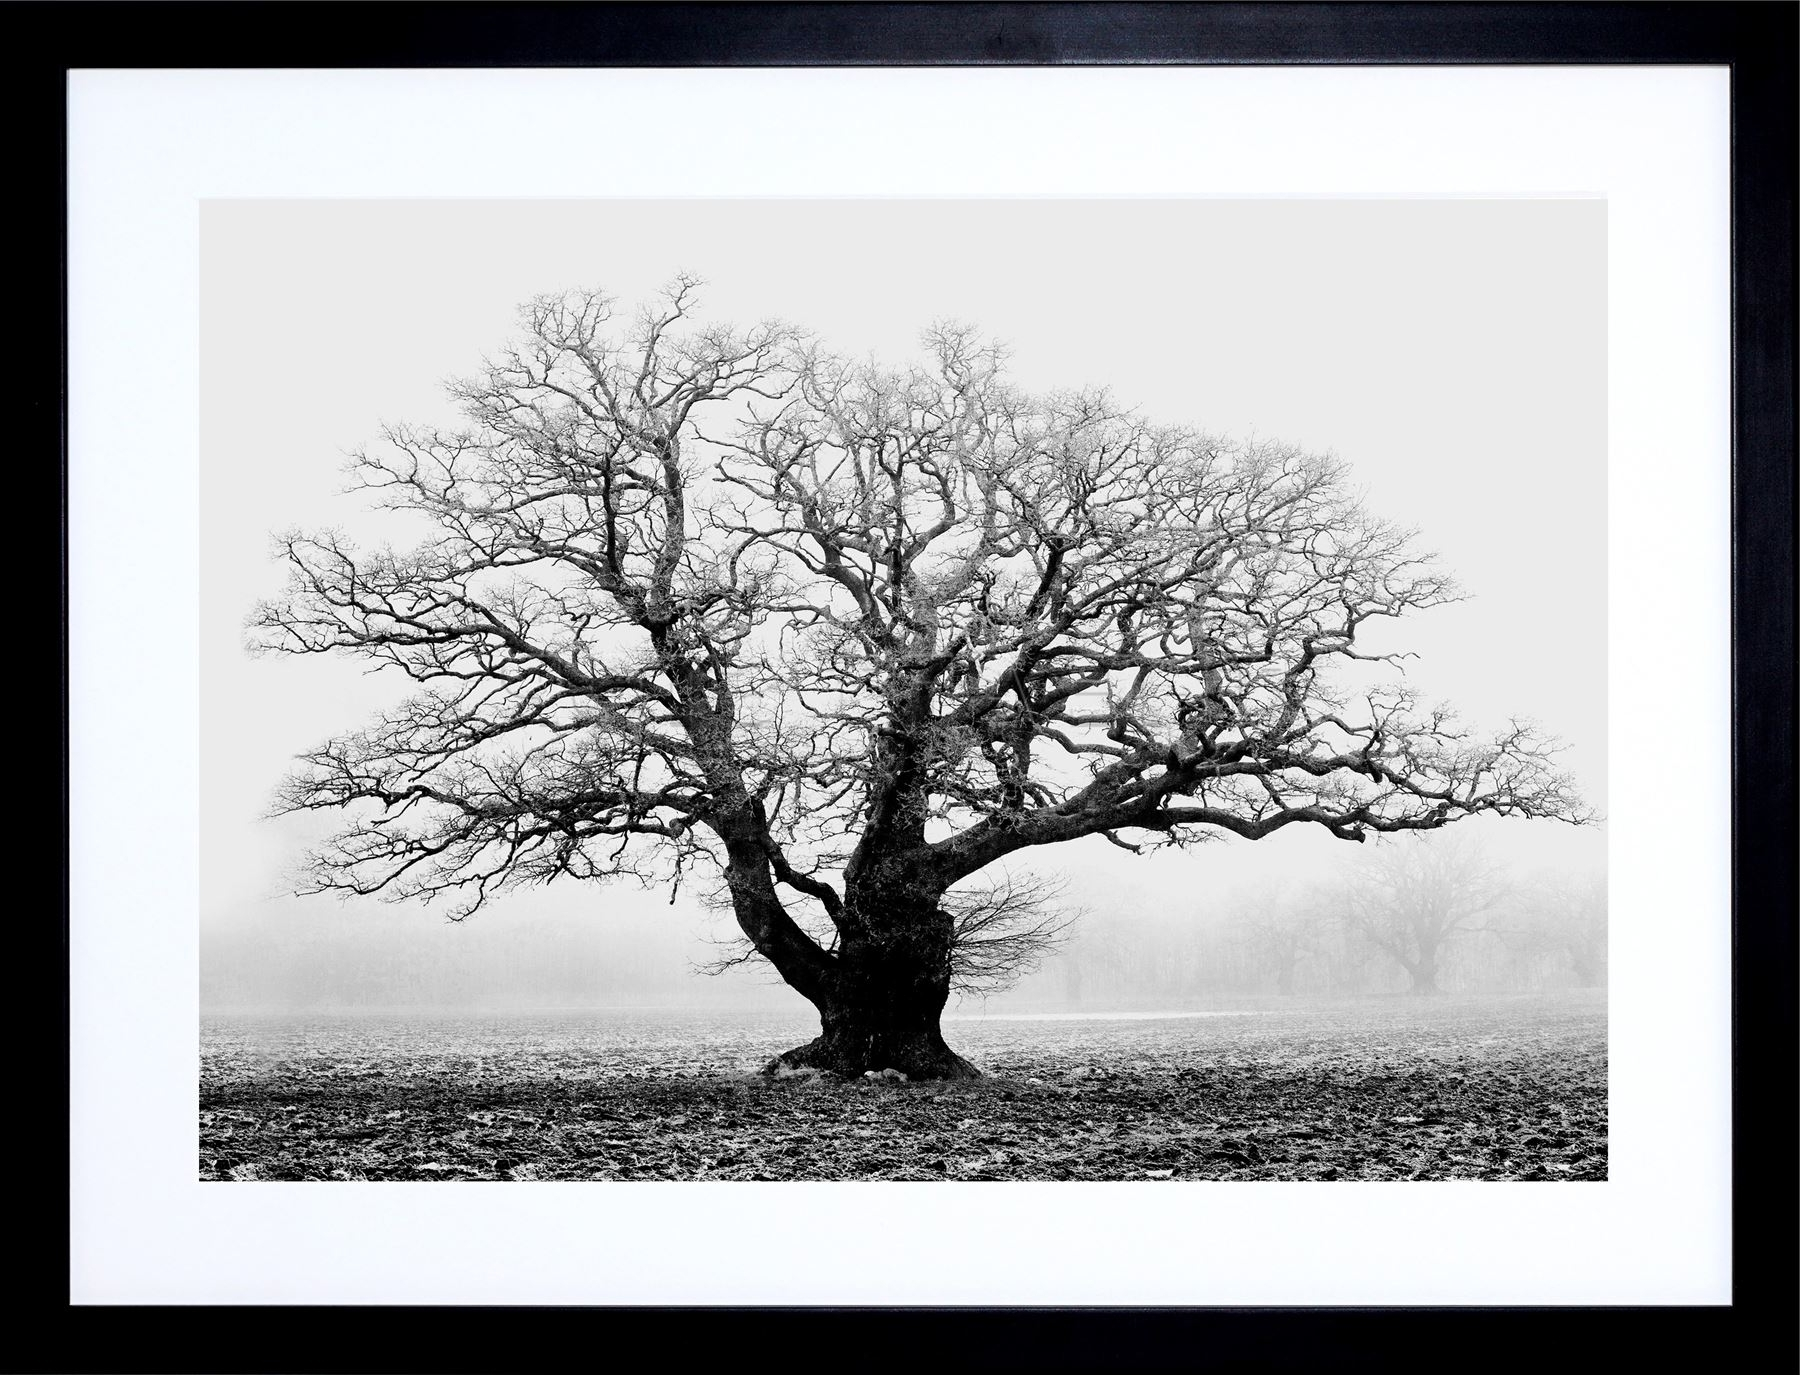 Framed Art Prints In Fashionable Old Oak Tree Black White Mist Fog Photo Framed Art Print Picture (View 6 of 15)